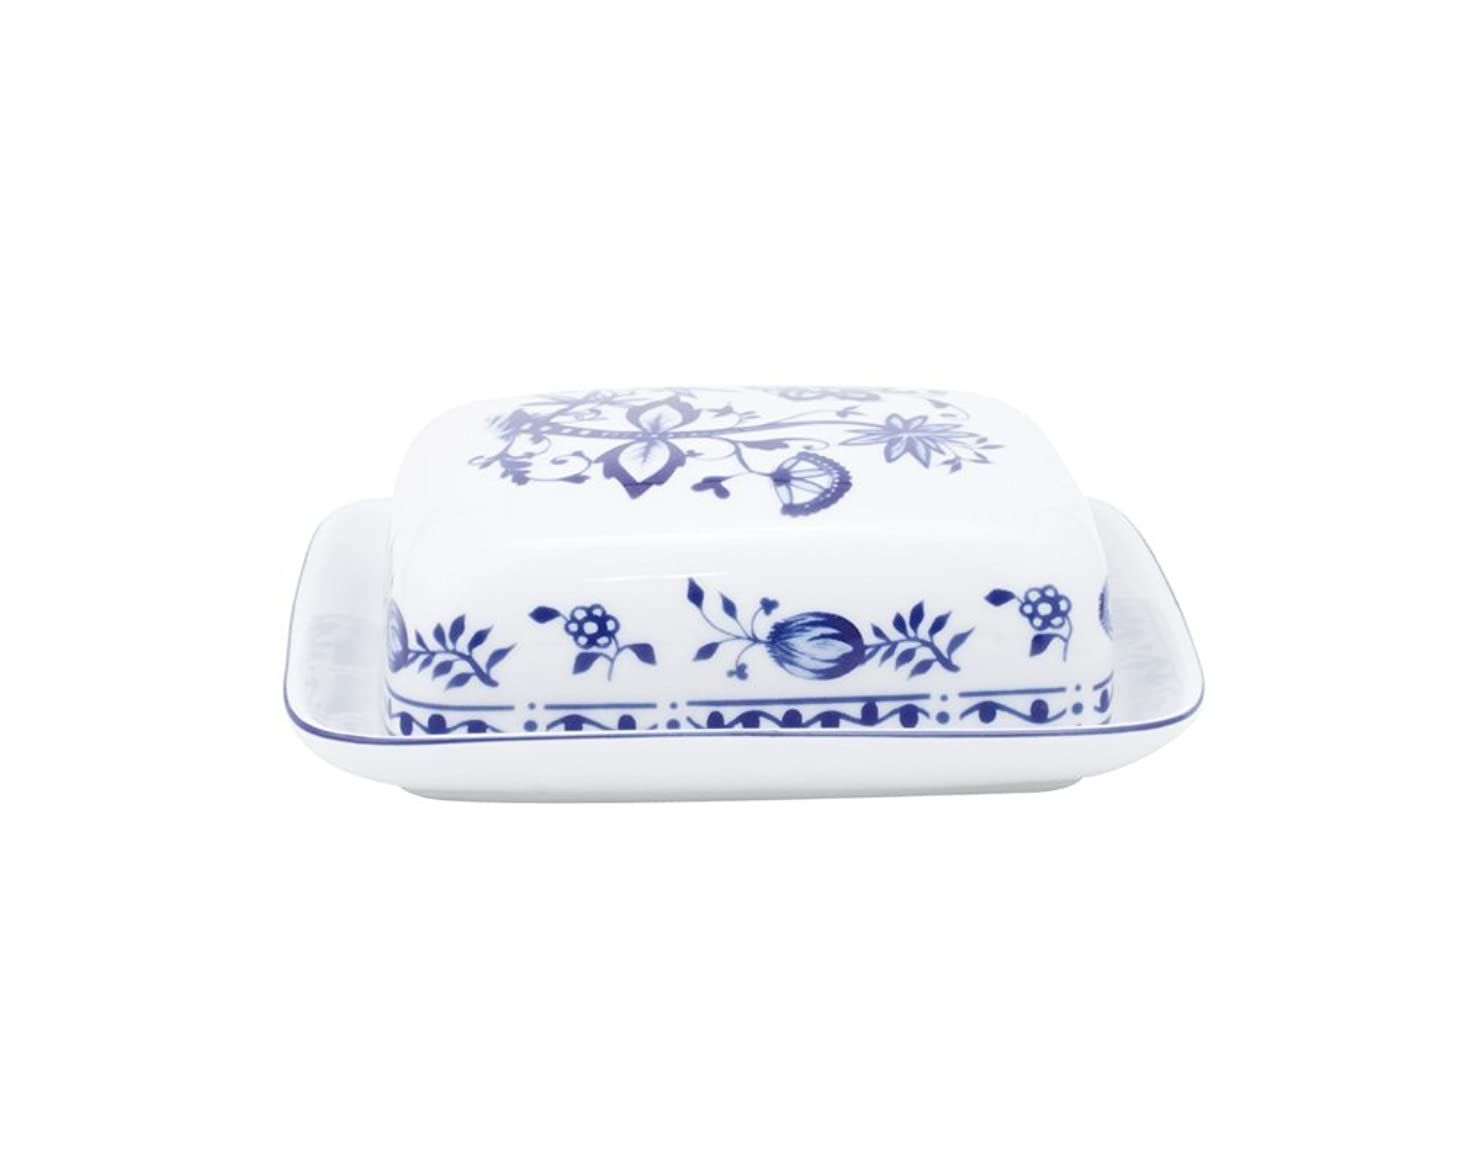 KAHLA Onion Pattern, Angular Butter Dish, Rossella Color, 1 Piece